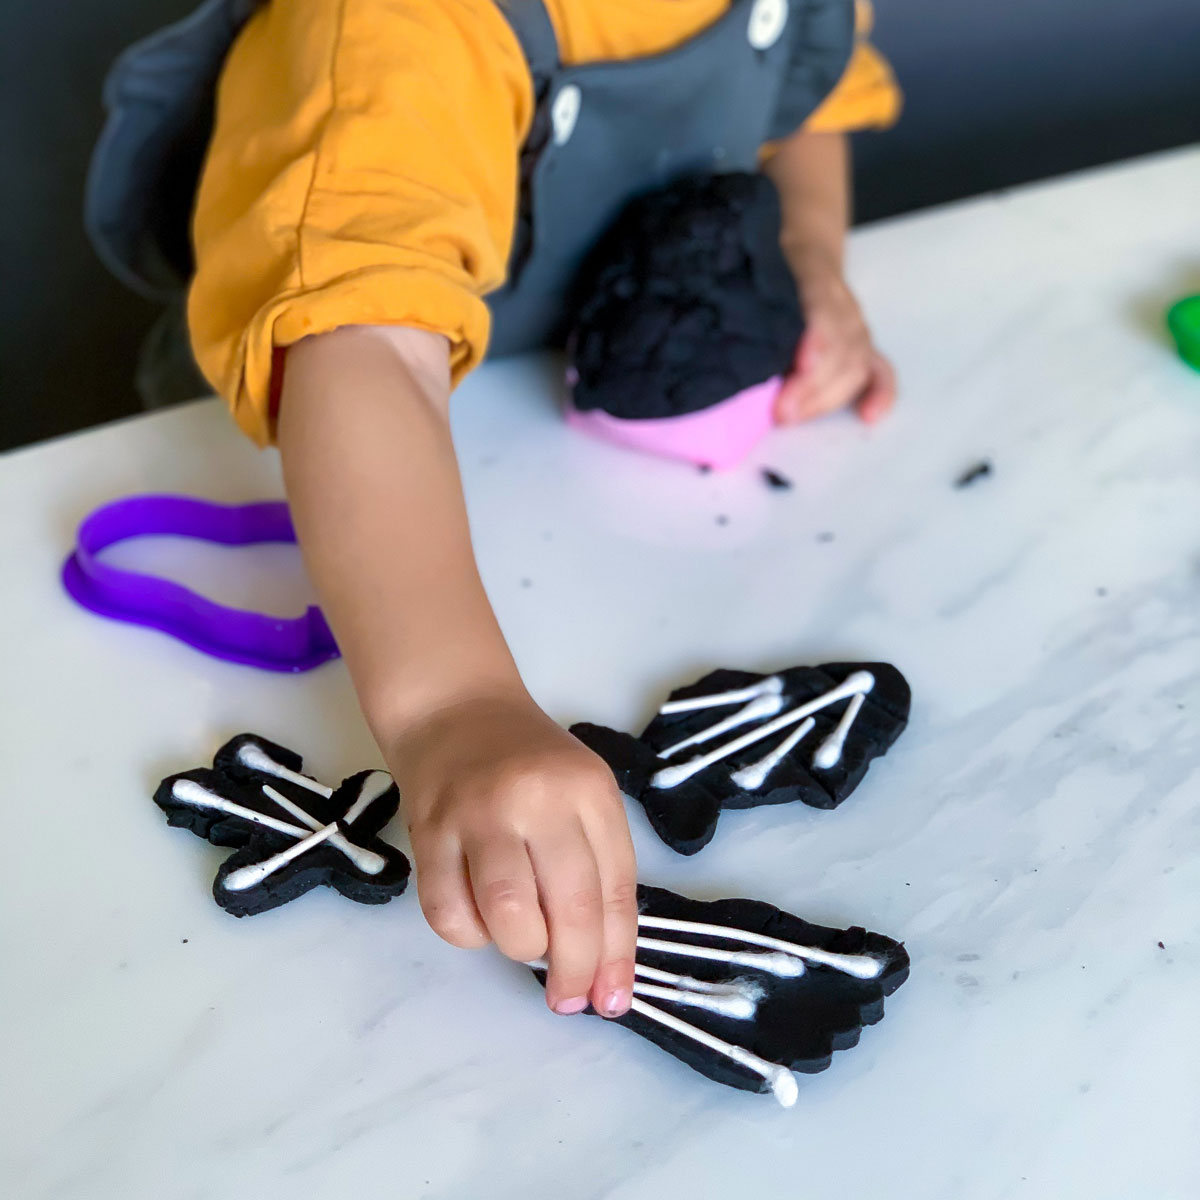 Q-Tip Skeleton Craft with Easy Play Dough Recipe